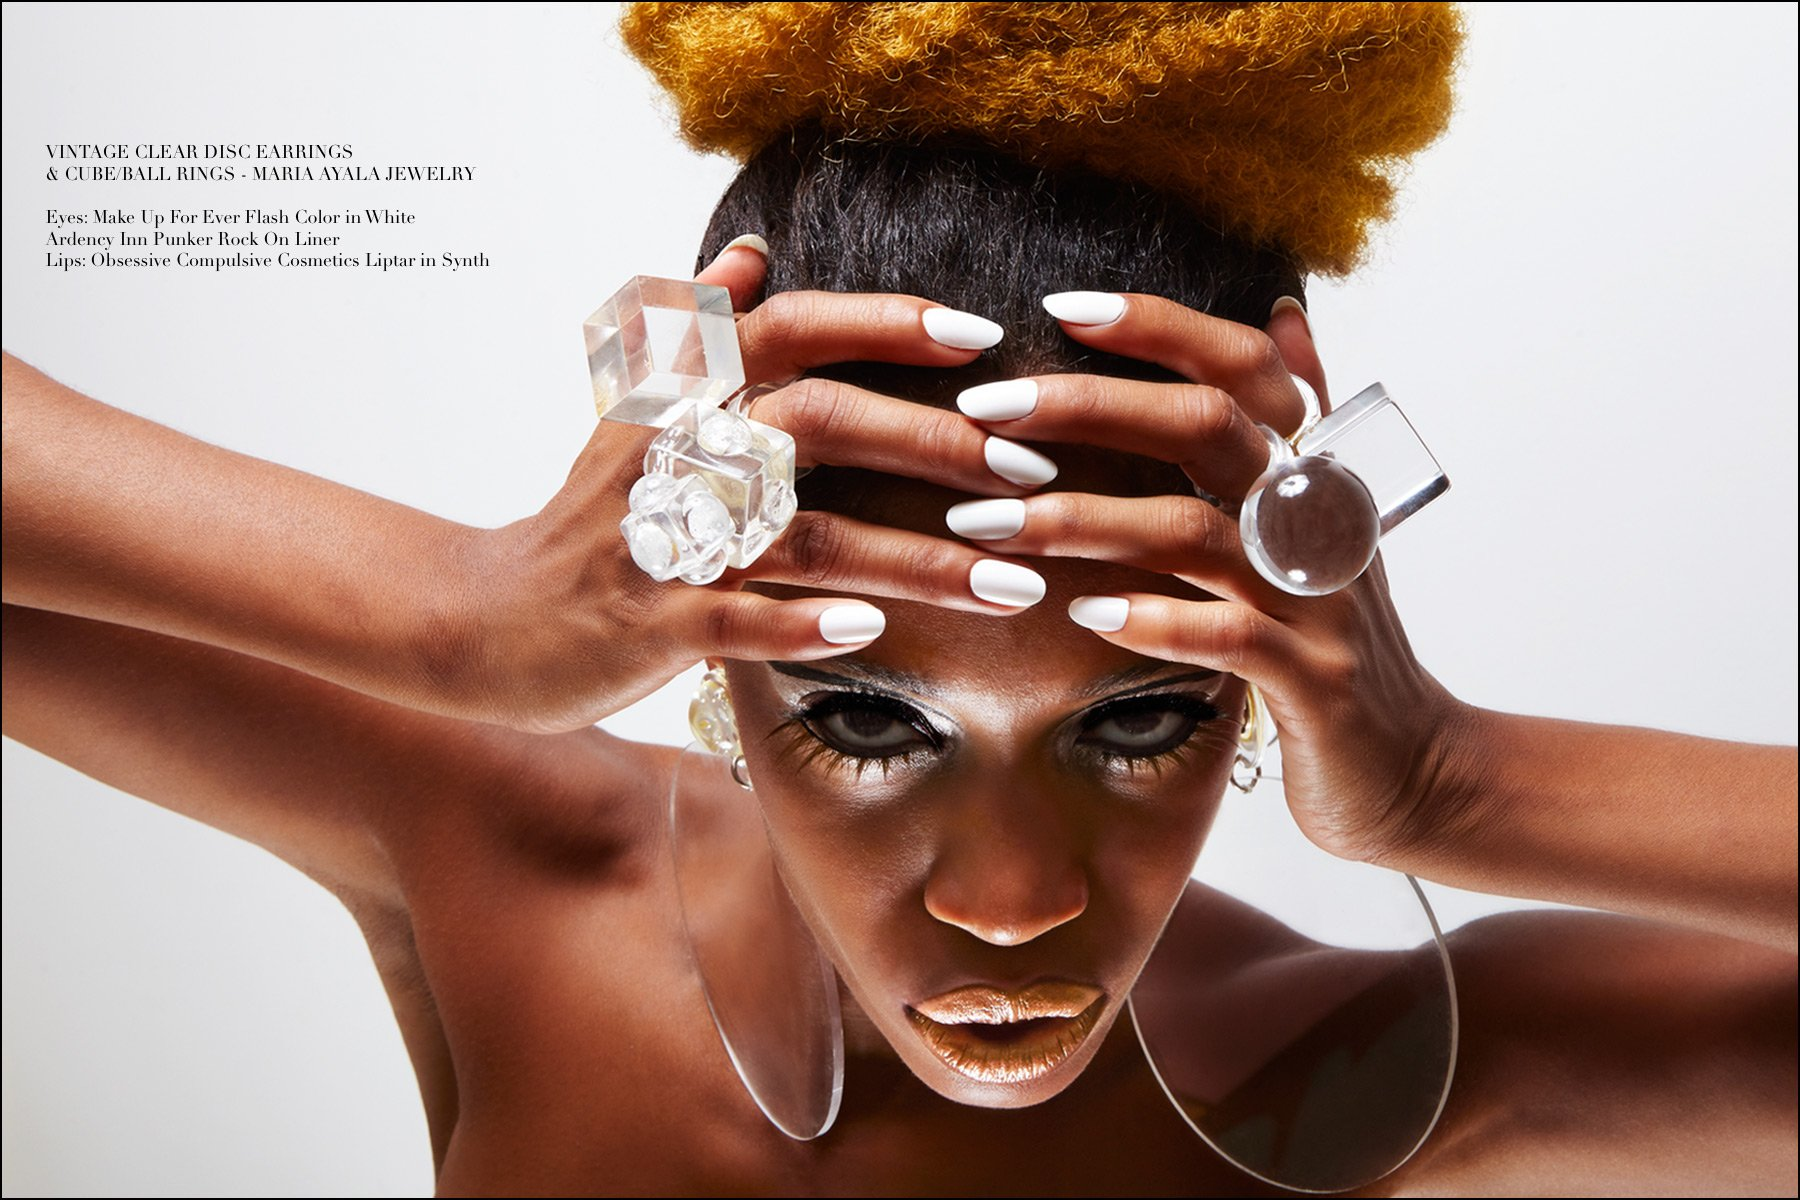 Oversized vintage lucite jewelry designed by Maria Ayala, featured on model Christina Anderson-McDonald, with photography by Alexander Thompson for Ponyboy magazine NY.